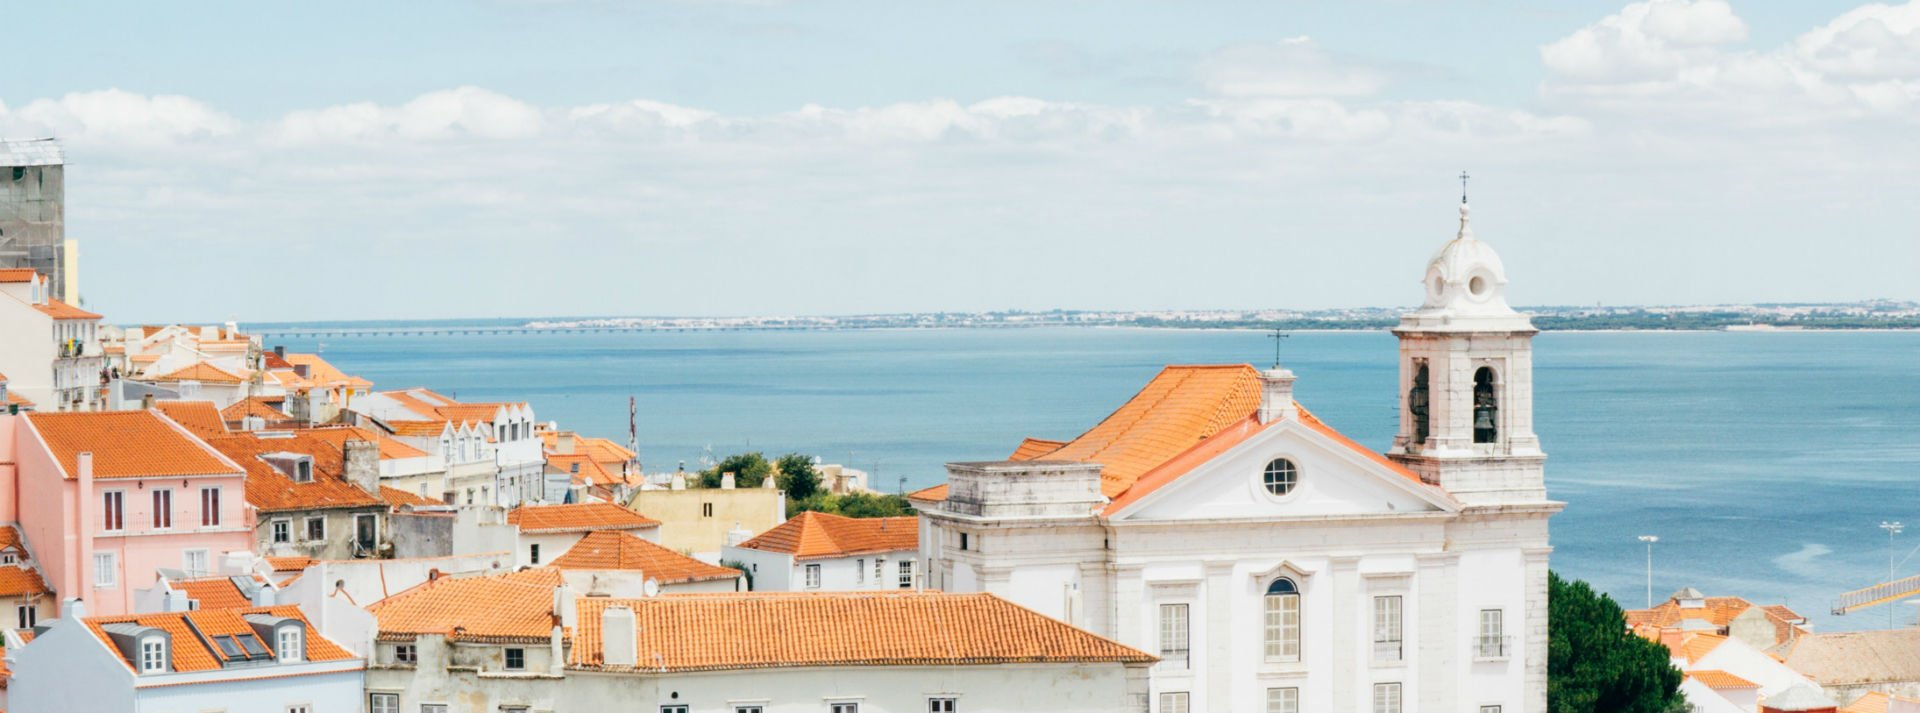 An aerial view of a city in Portugal - learn Portuguese online with Bespeaking Portuguese teachers.